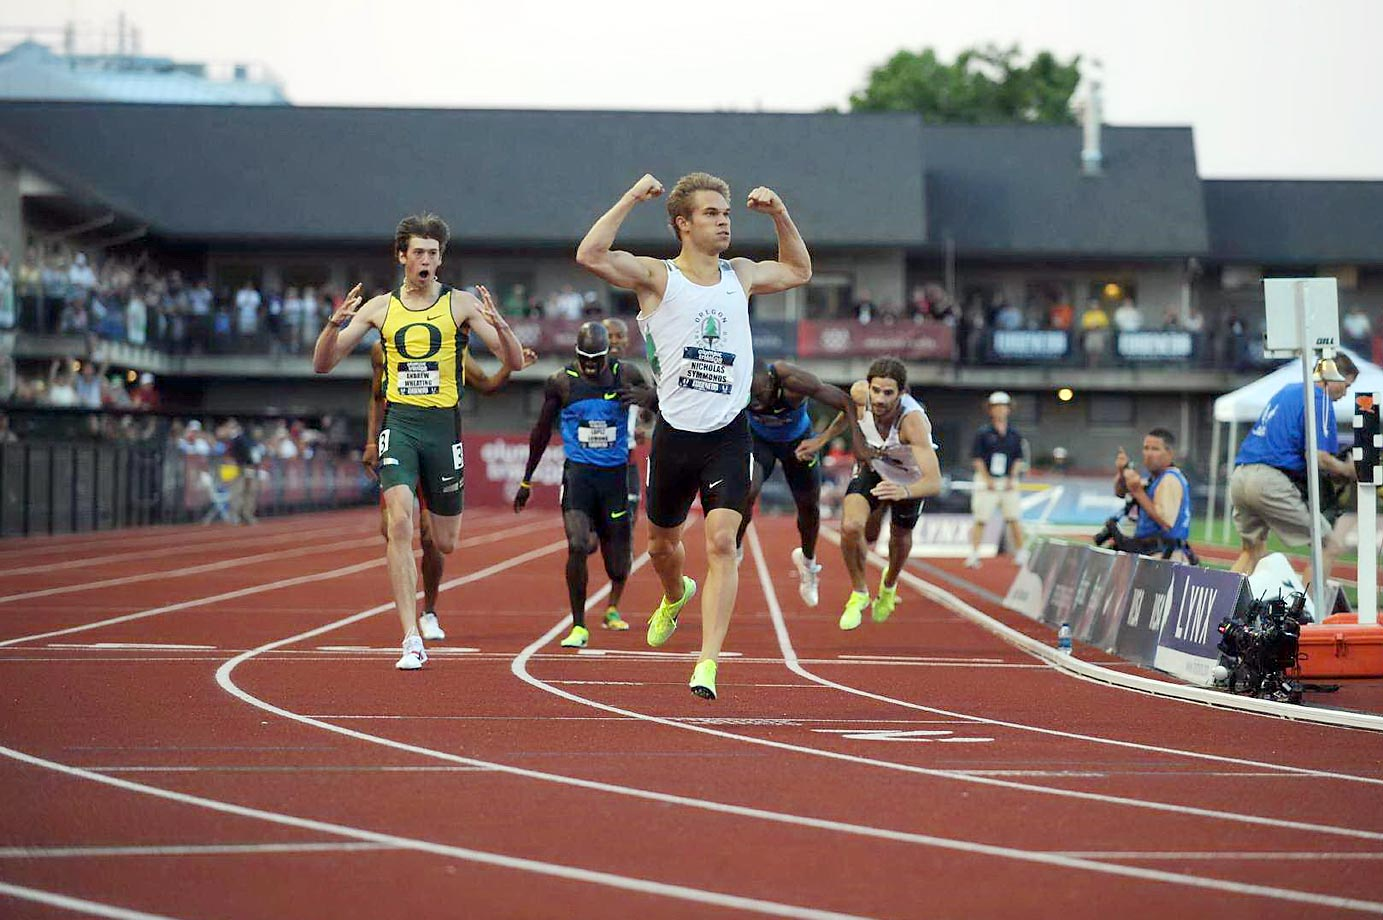 Nicholas Symmonds wins the 800-meter final at the U.S. Olympic trials in 2008.